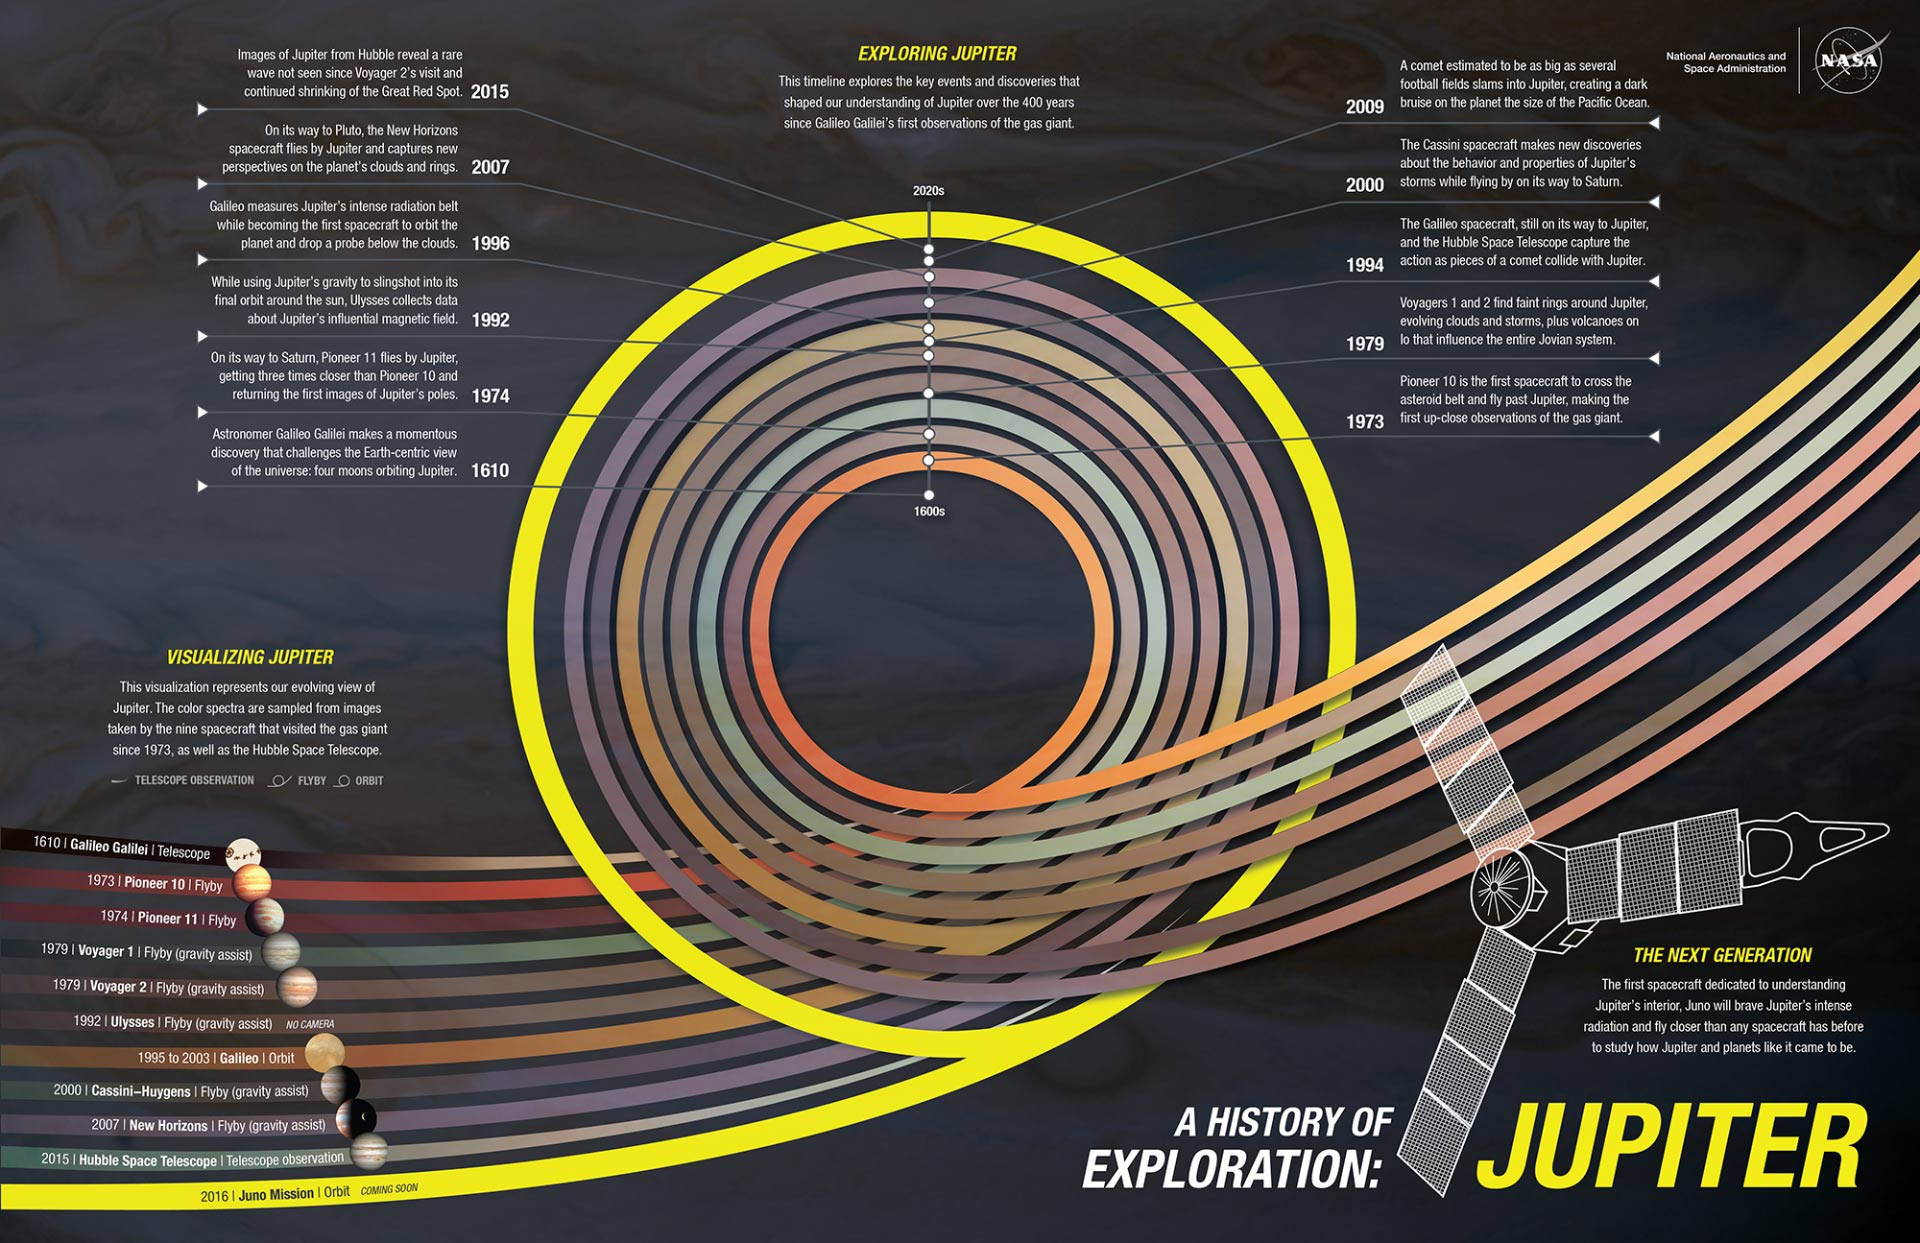 Scientists Excited As Juno Nears Jupiter Space